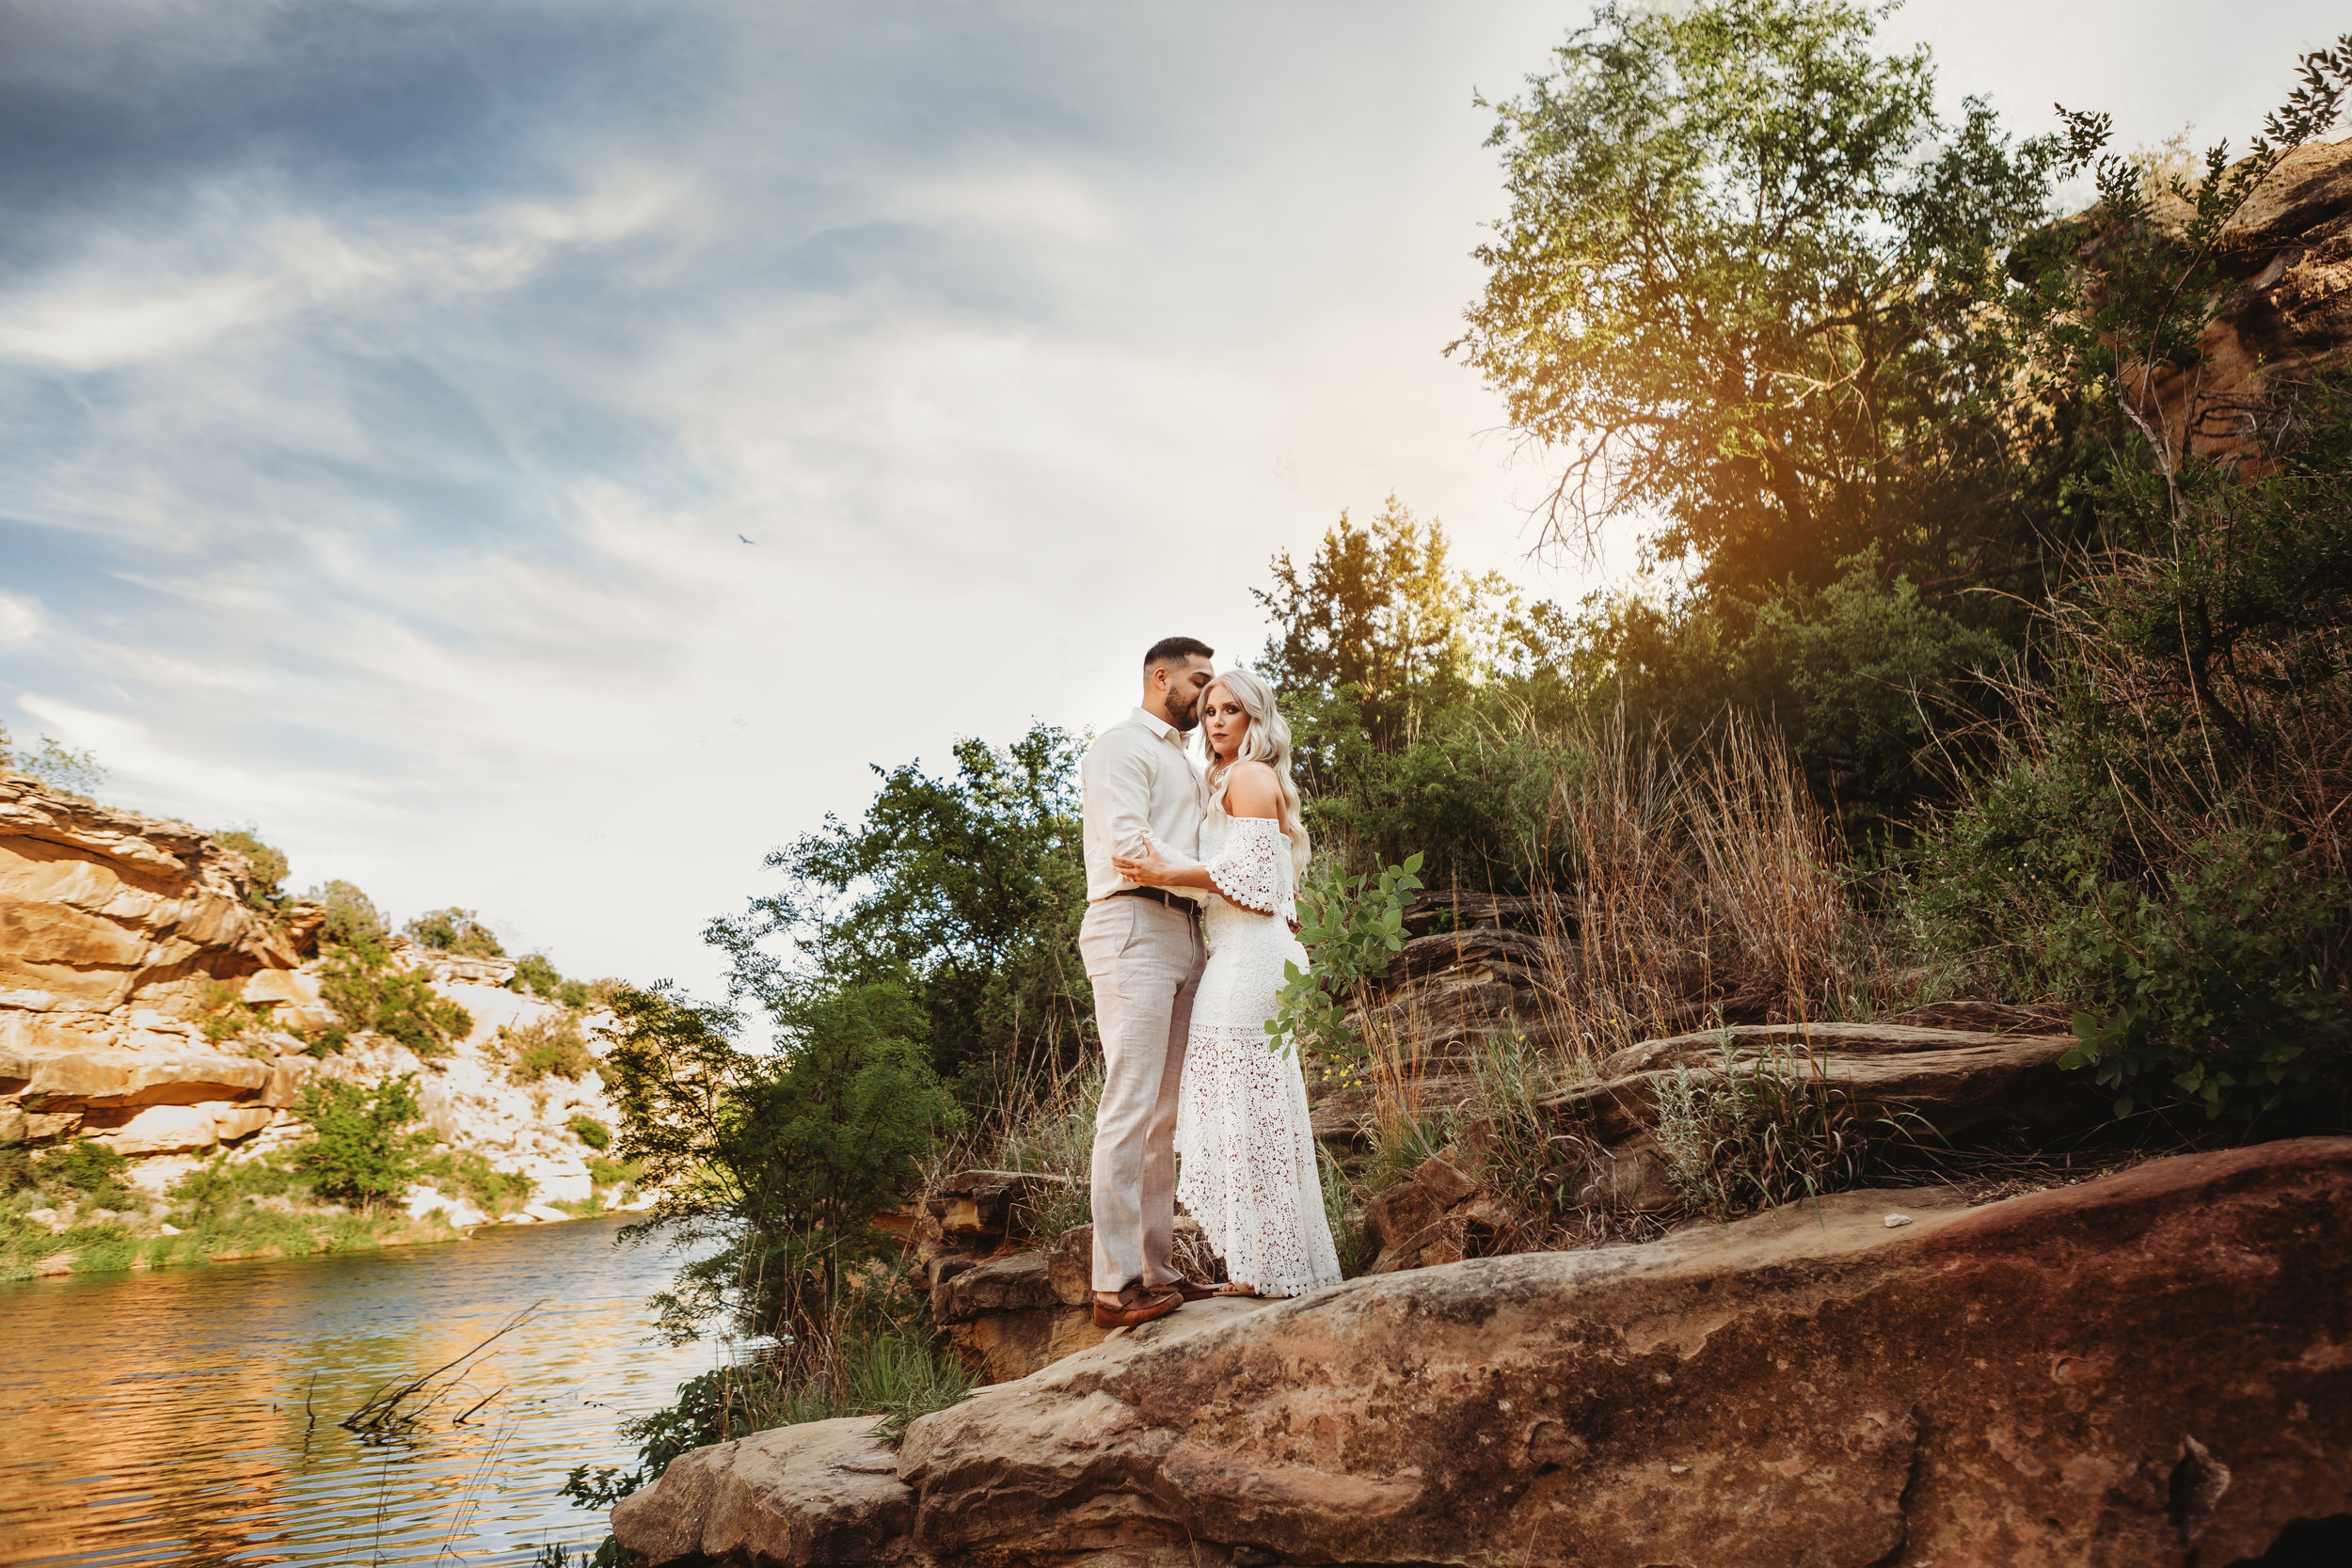 Standing on the river bank in casual white and neutral colored casual clothing #engagementphotos #riverfalls #engaged #personality #amarillotexas #engagementphotographer #lifestylephotos #amarillophotographer #locationchoice #texasengagementphotos #engagment #tealawardphotography #wildliferefuge